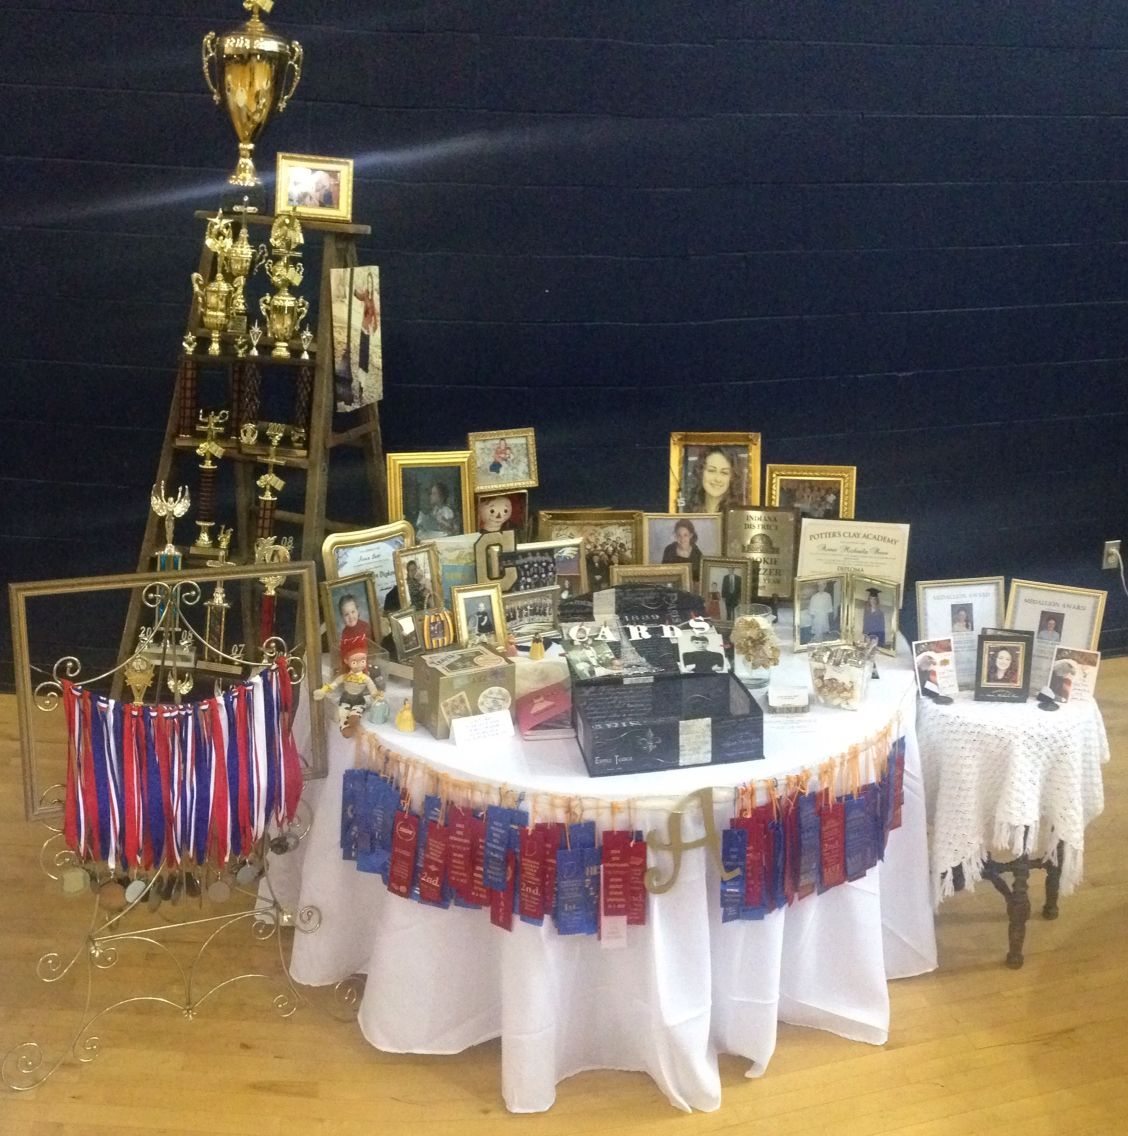 Graduation table with trophies medals and ribbons